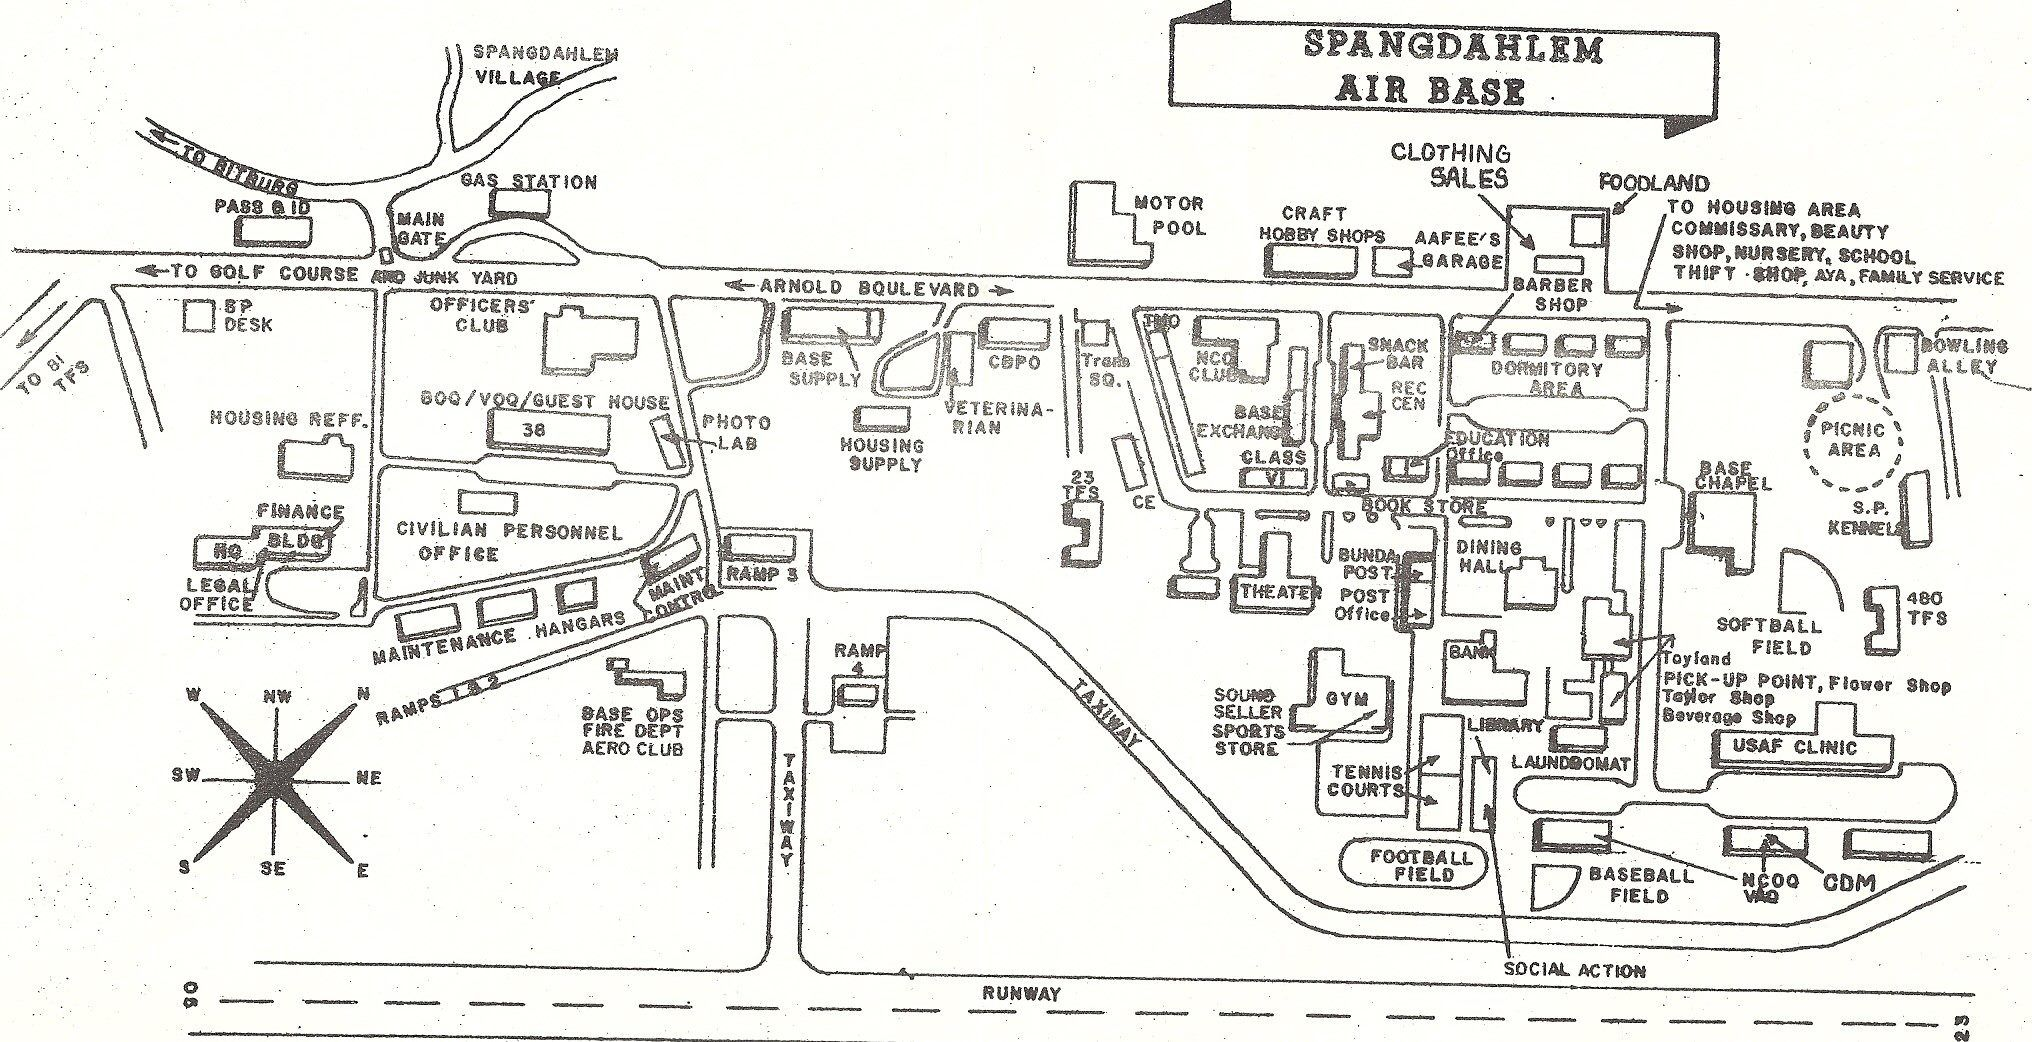 A Drawn Map Of Part Of Spang Afb